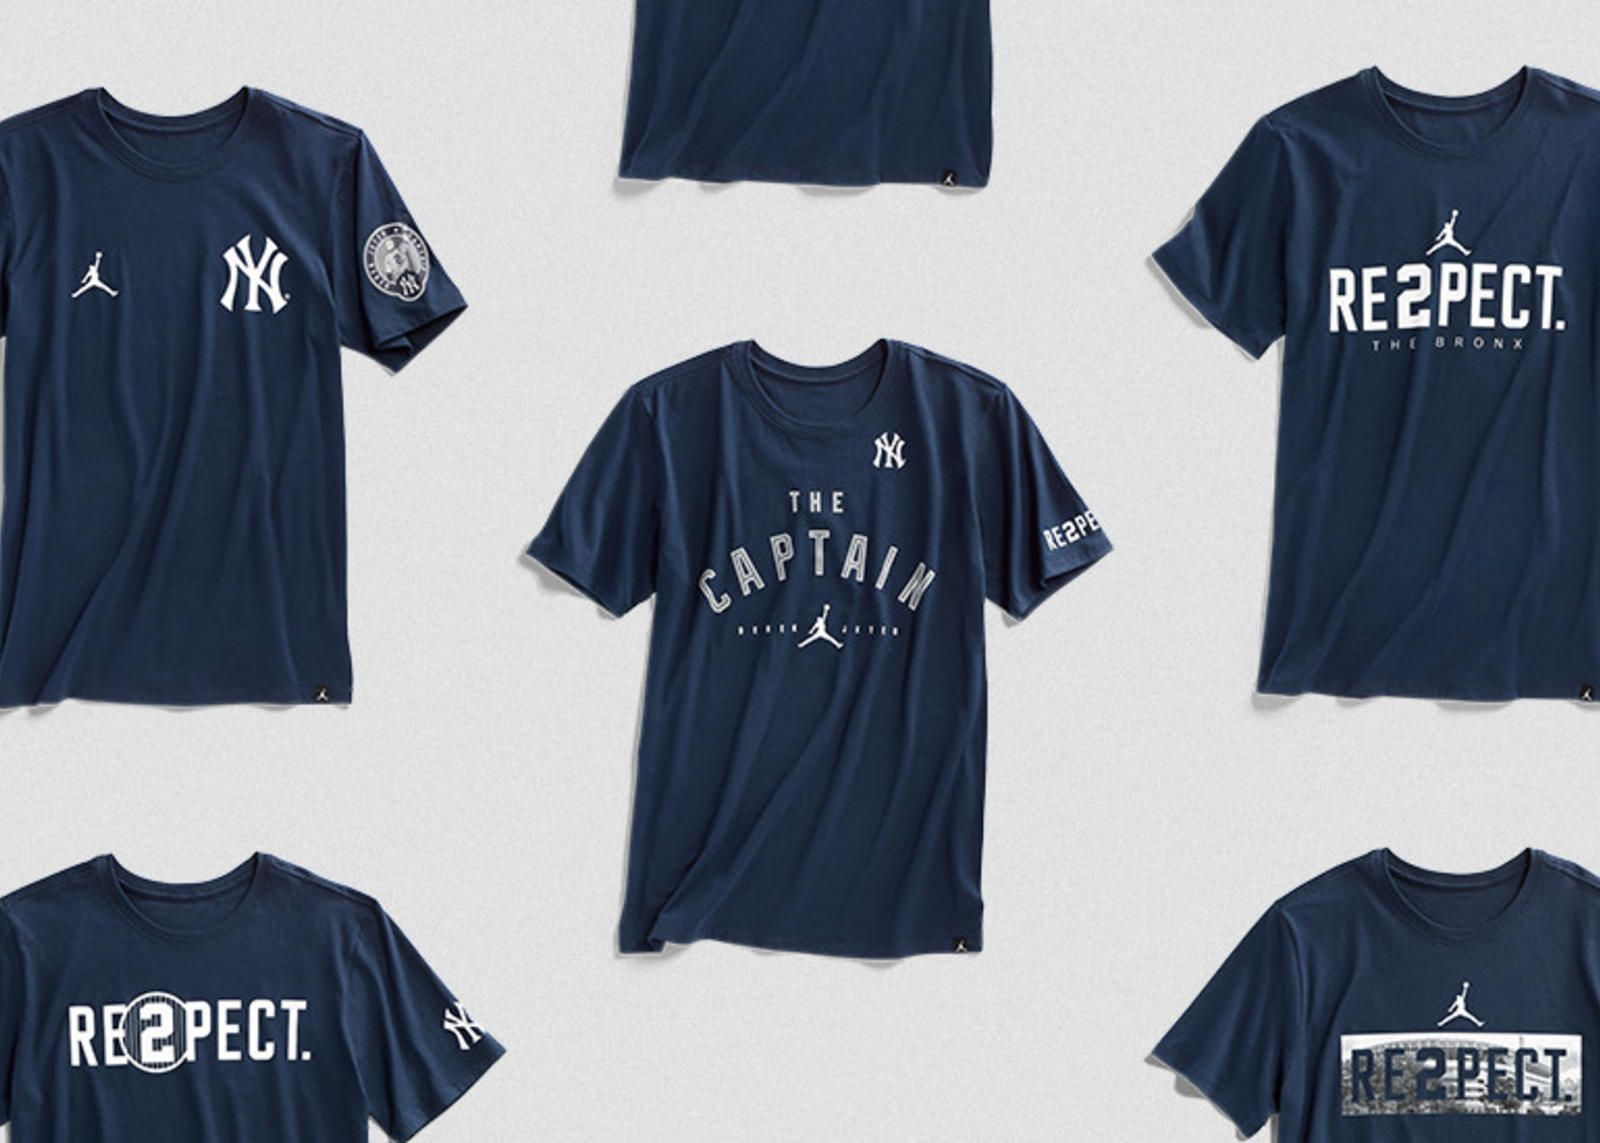 reputable site feed9 43eb2 Jordan Brand Celebrates Derek Jeter's #2 Jersey Retirement ...